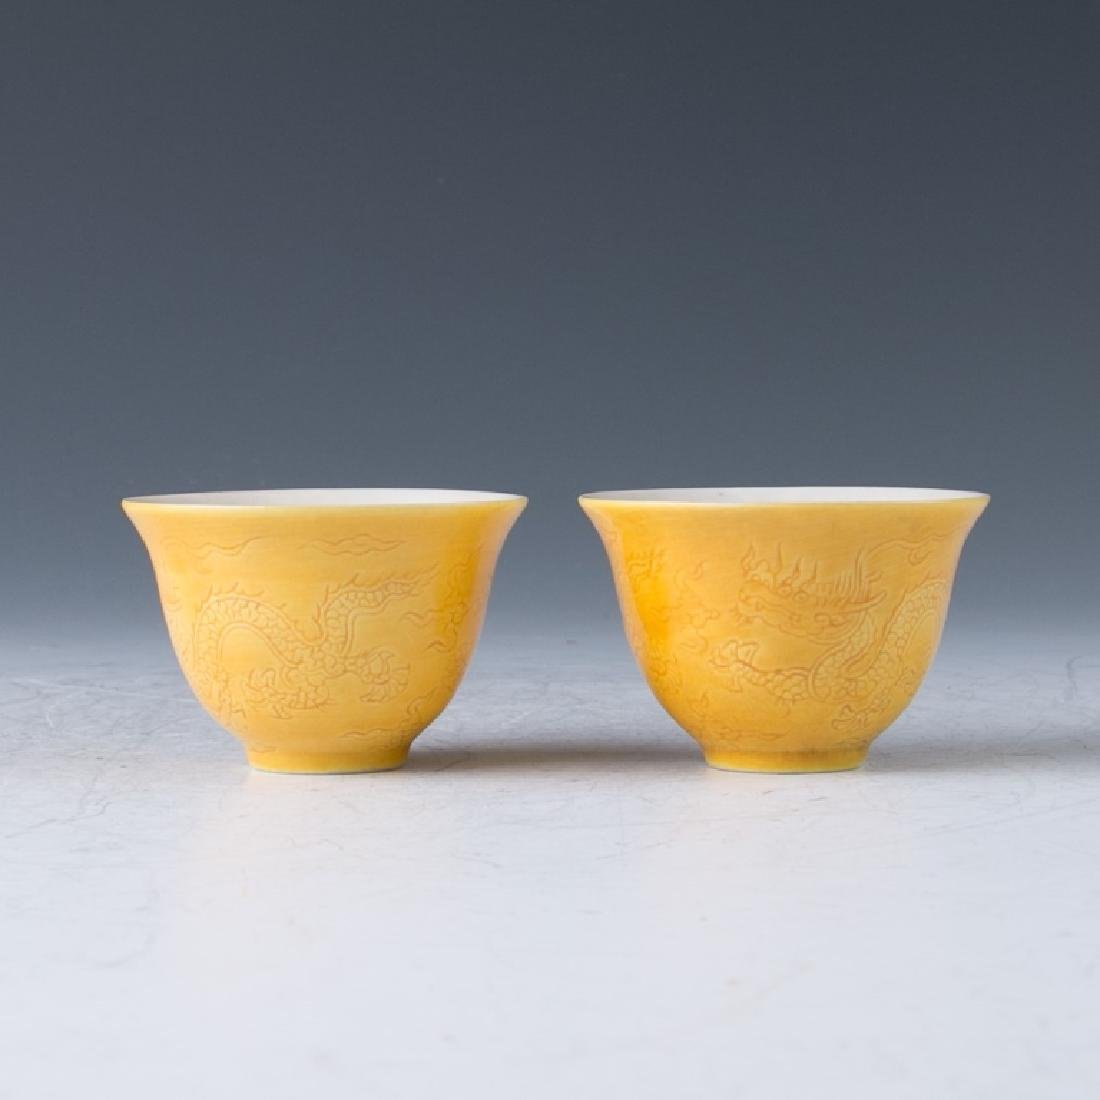 A Pair of Yellow Ming Style Cups